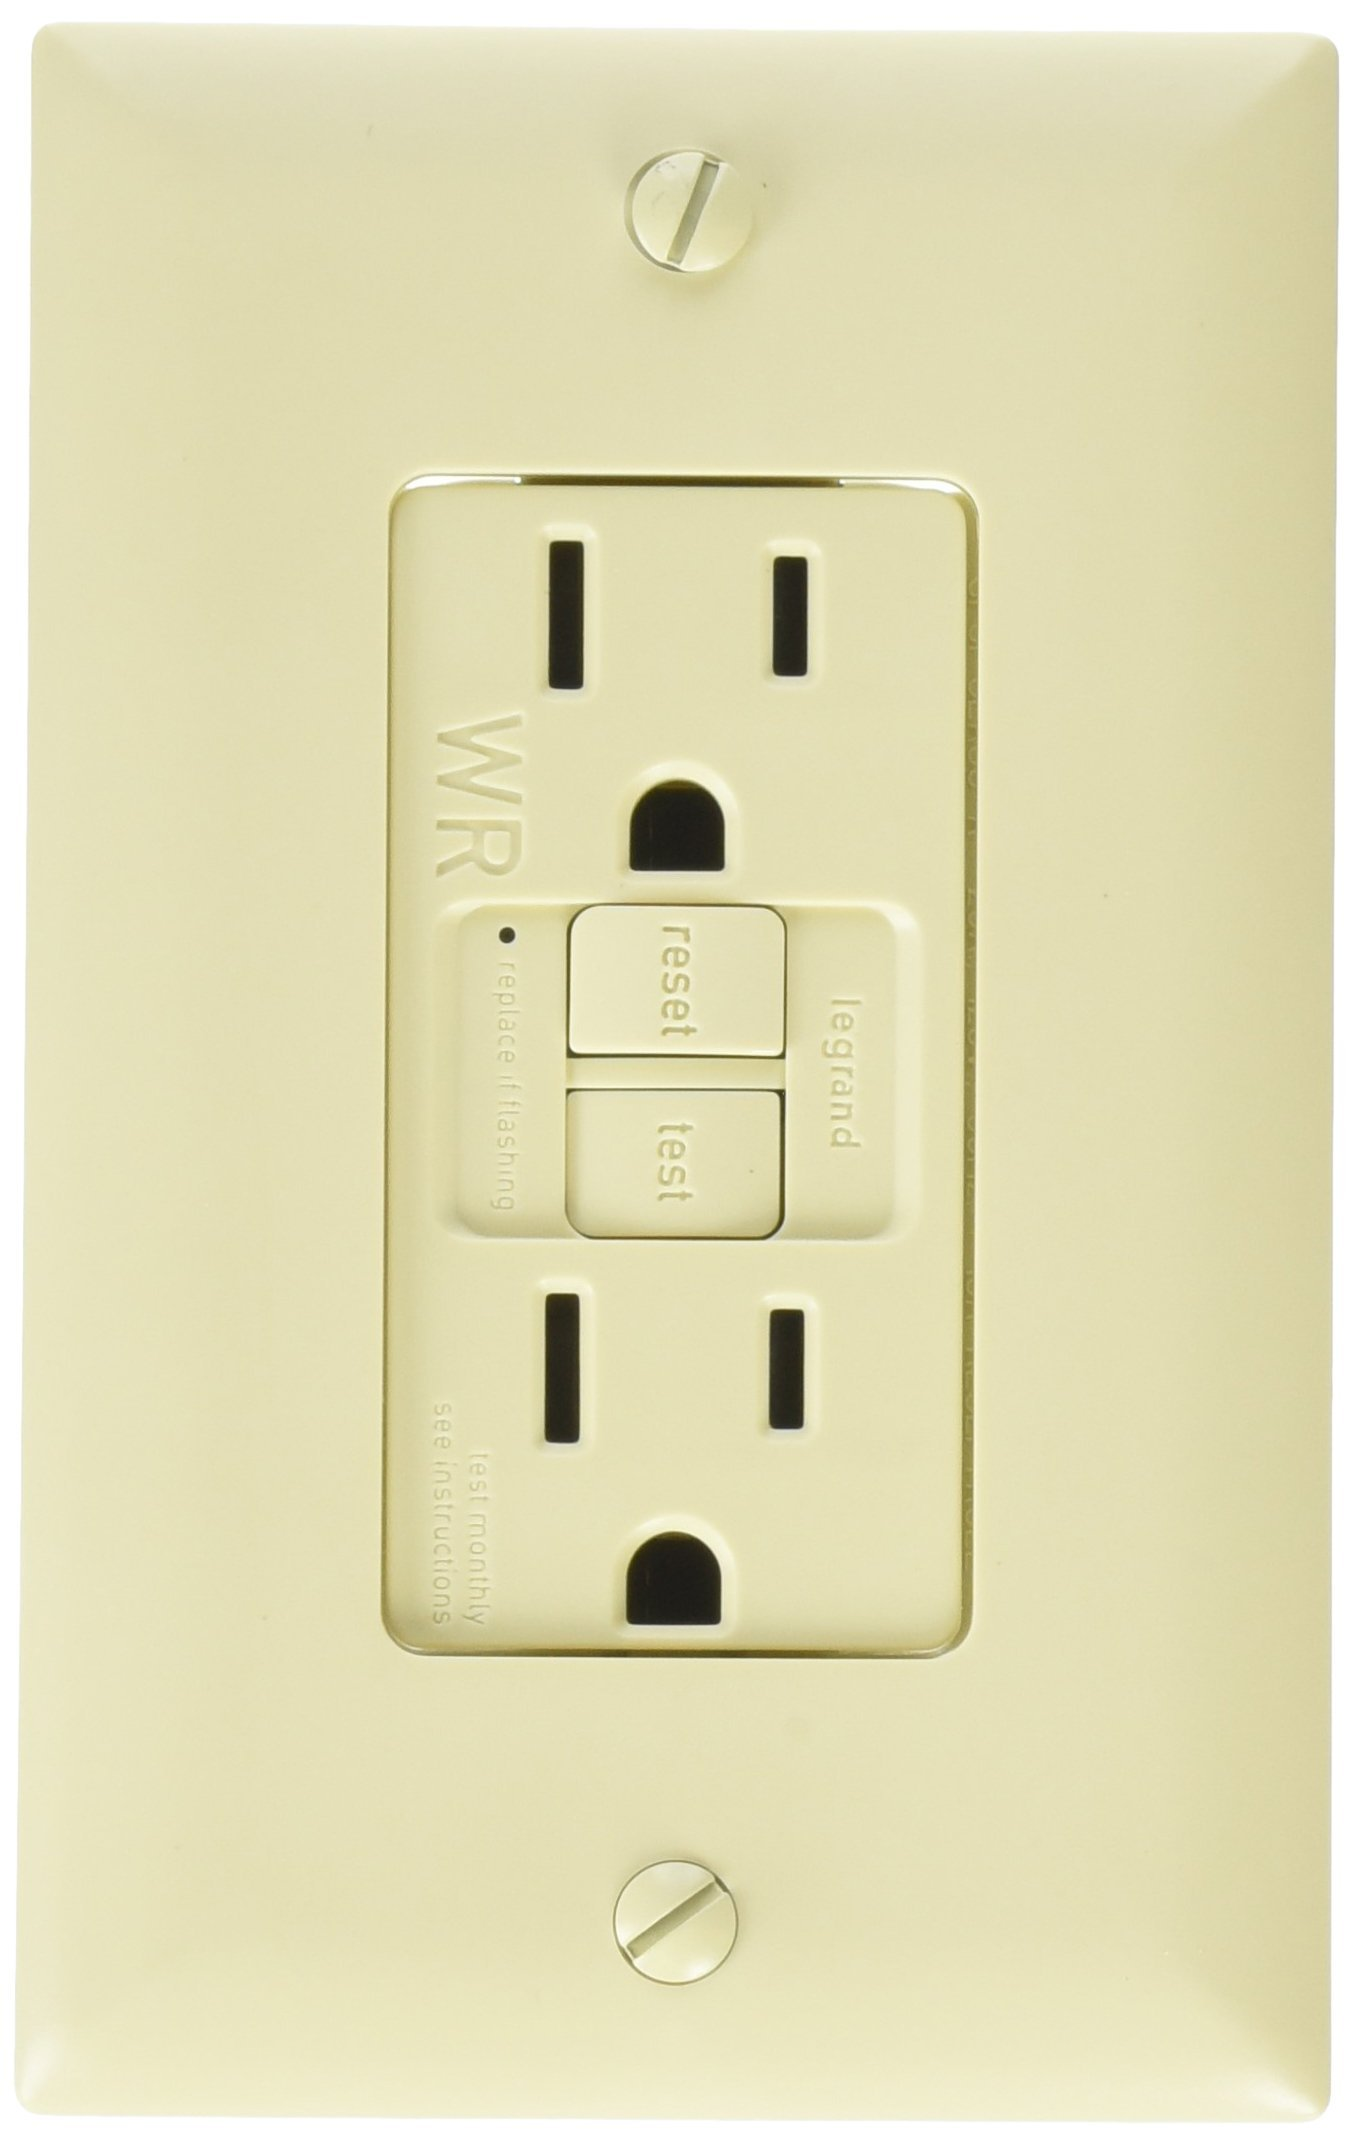 Legrand-Pass & Seymour 1597TRWRICC4 Self-Test GFCI Receptacle Outlet with Wall Plate, 15Amp 125V, Ivory